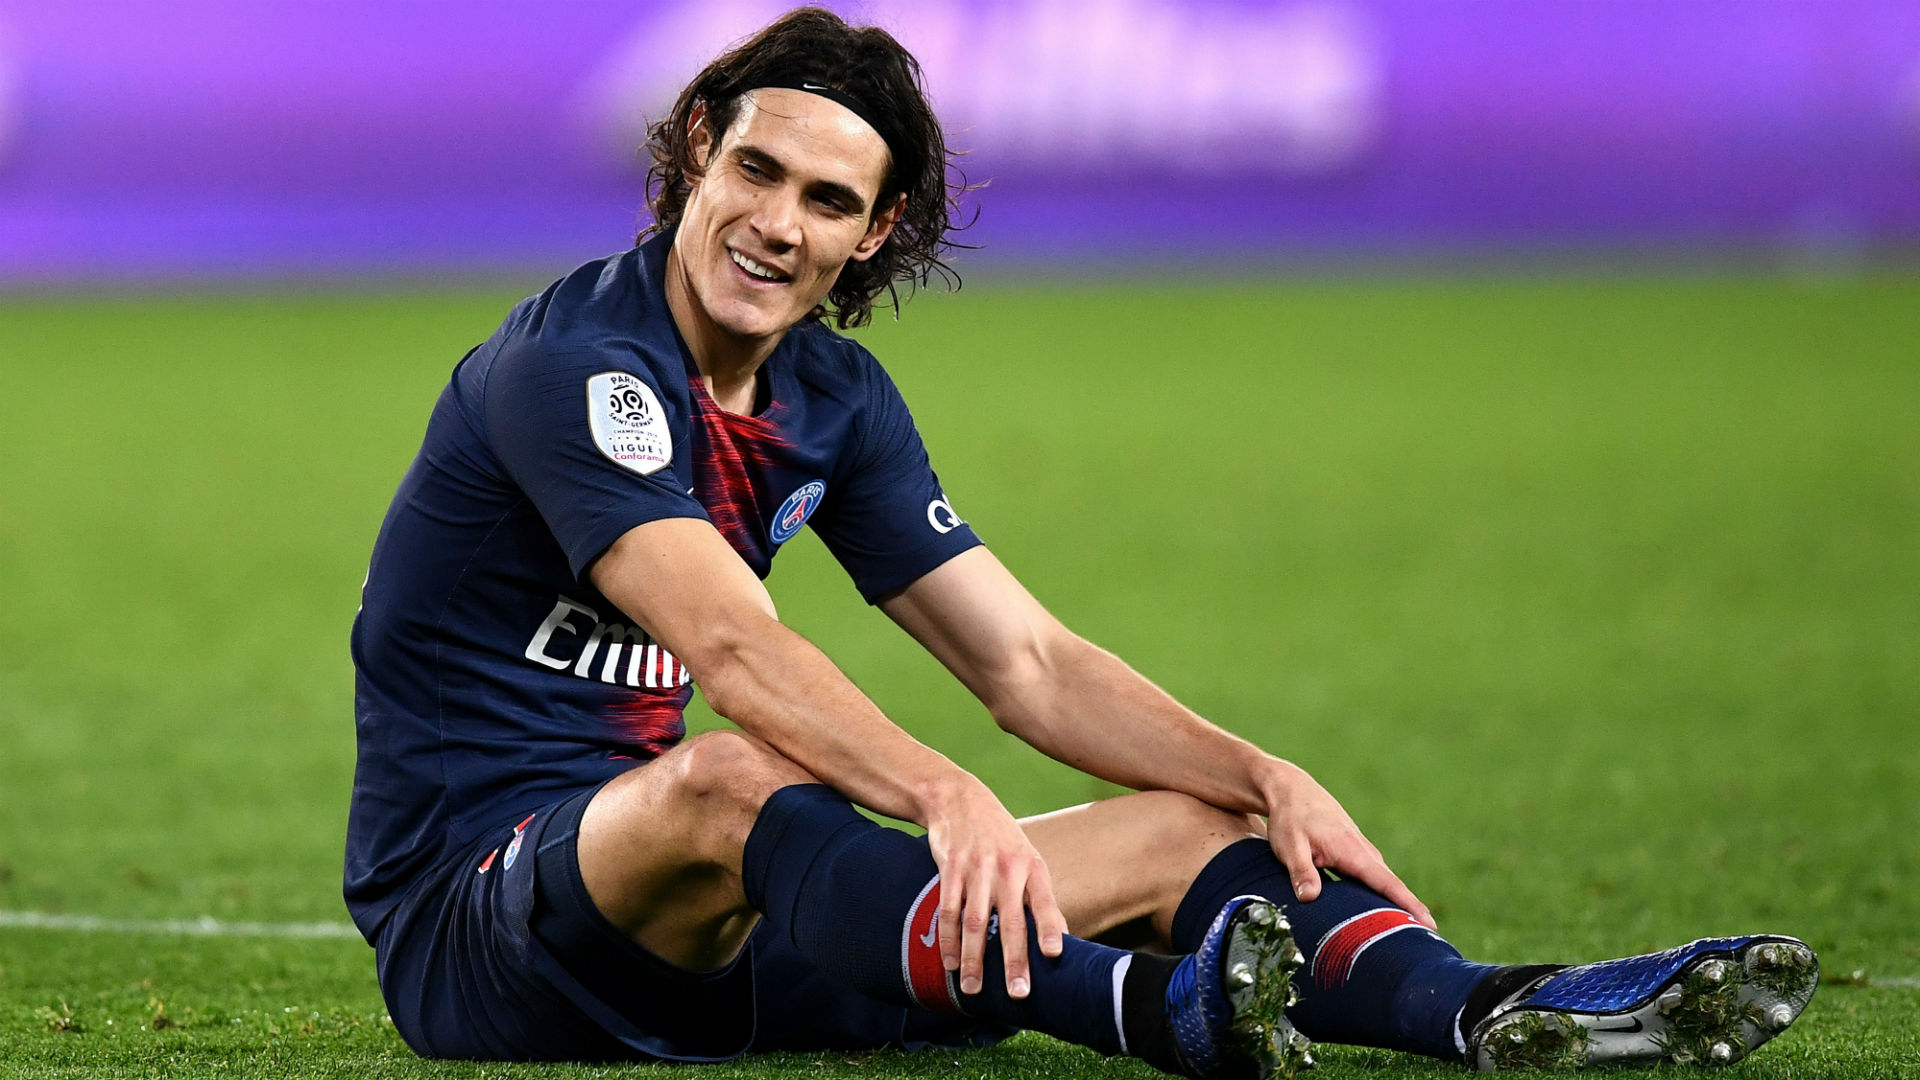 Champions League: Cavani injured ahead of PSG's trip to play Manchester United